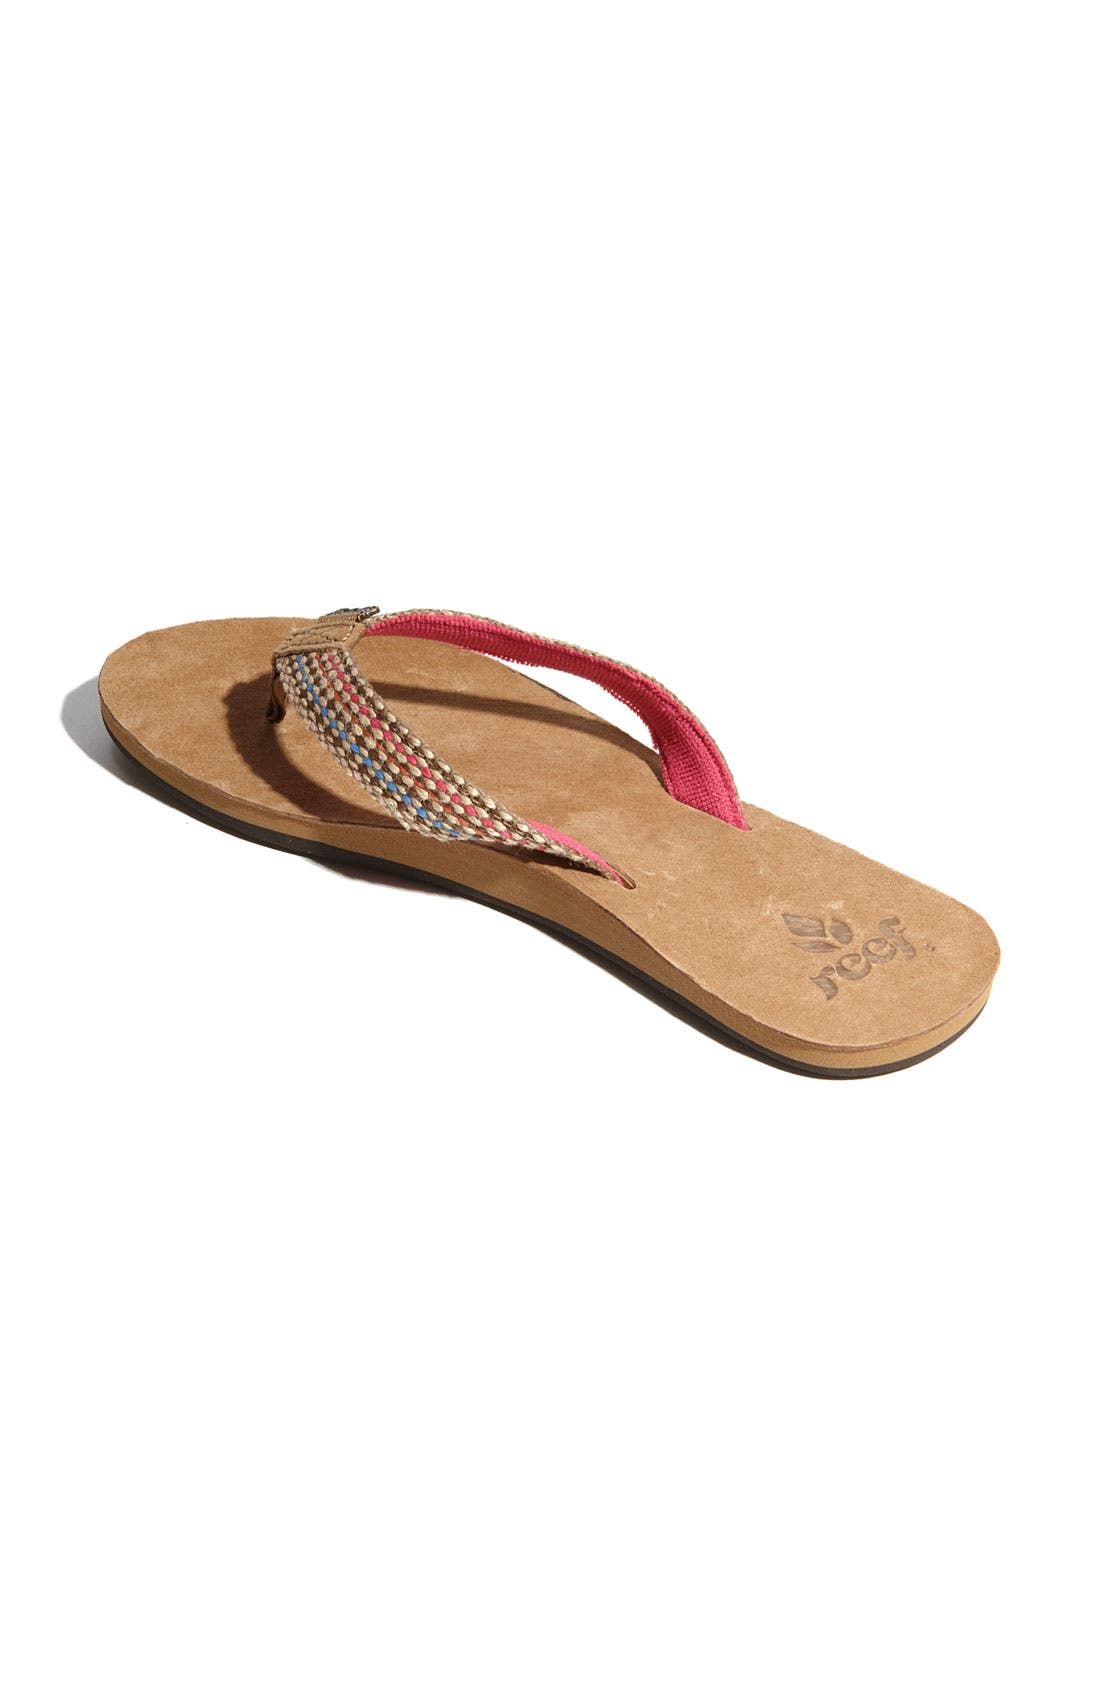 Alternate Image 2  - Reef 'Gypsylove' Sandal